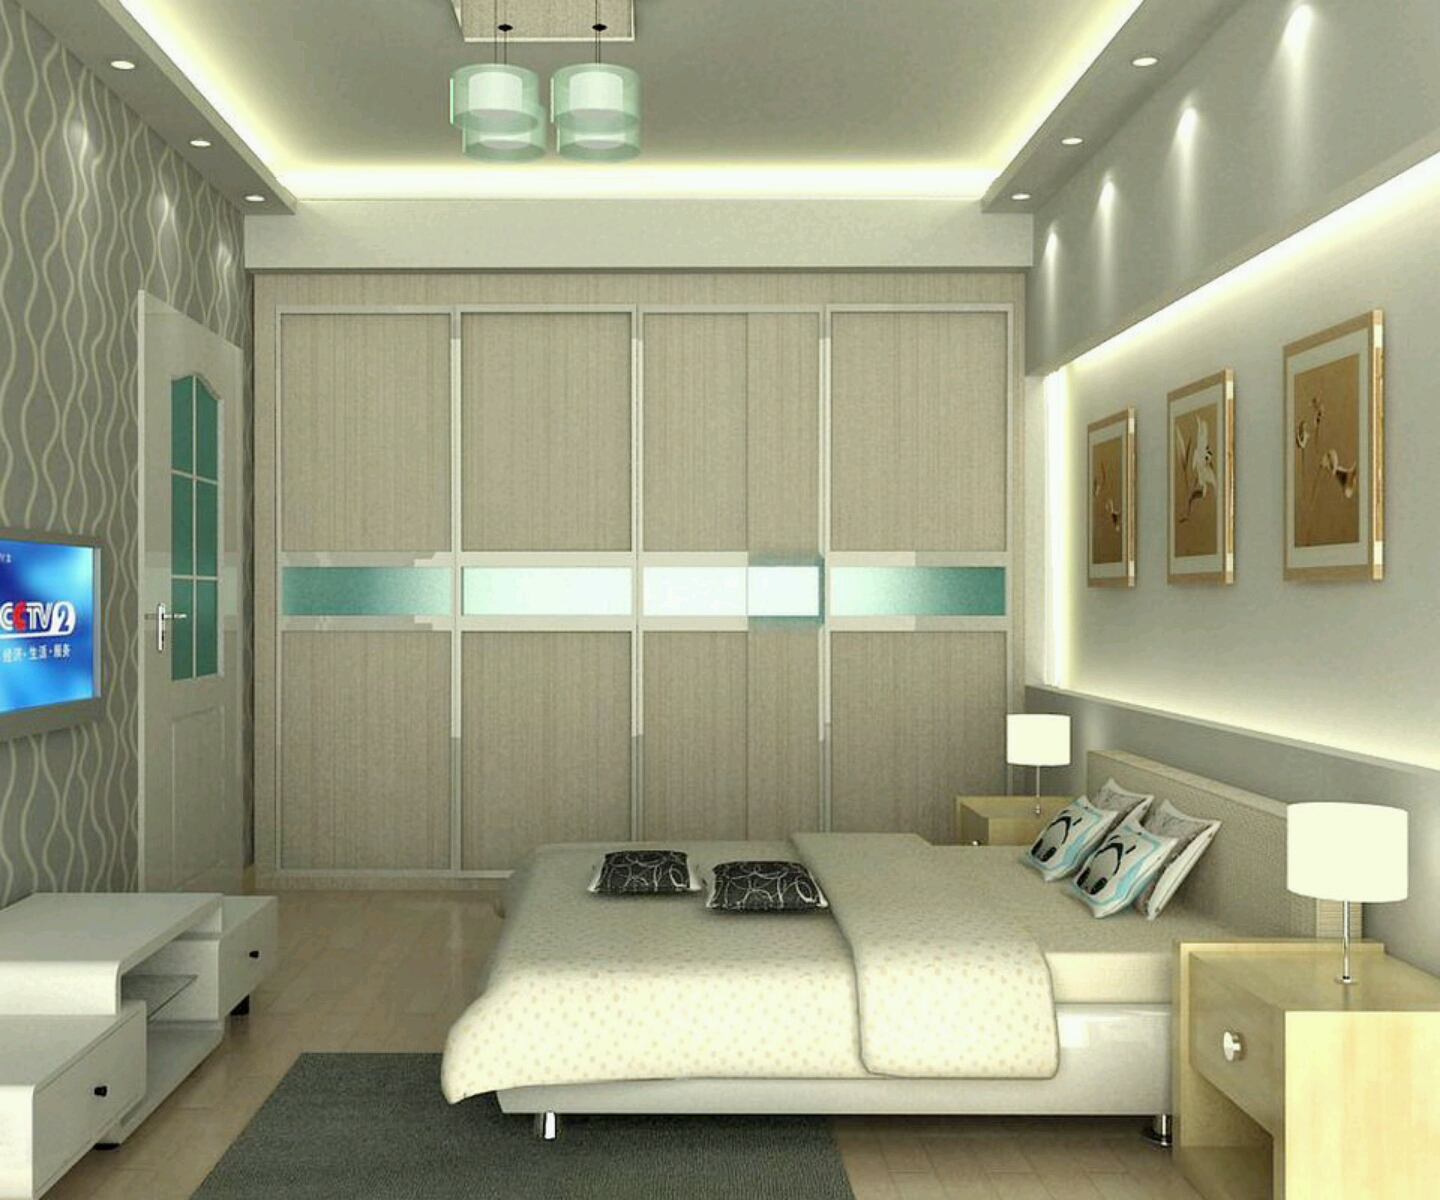 New home designs latest modern homes bedrooms designs Latest small bedroom designs